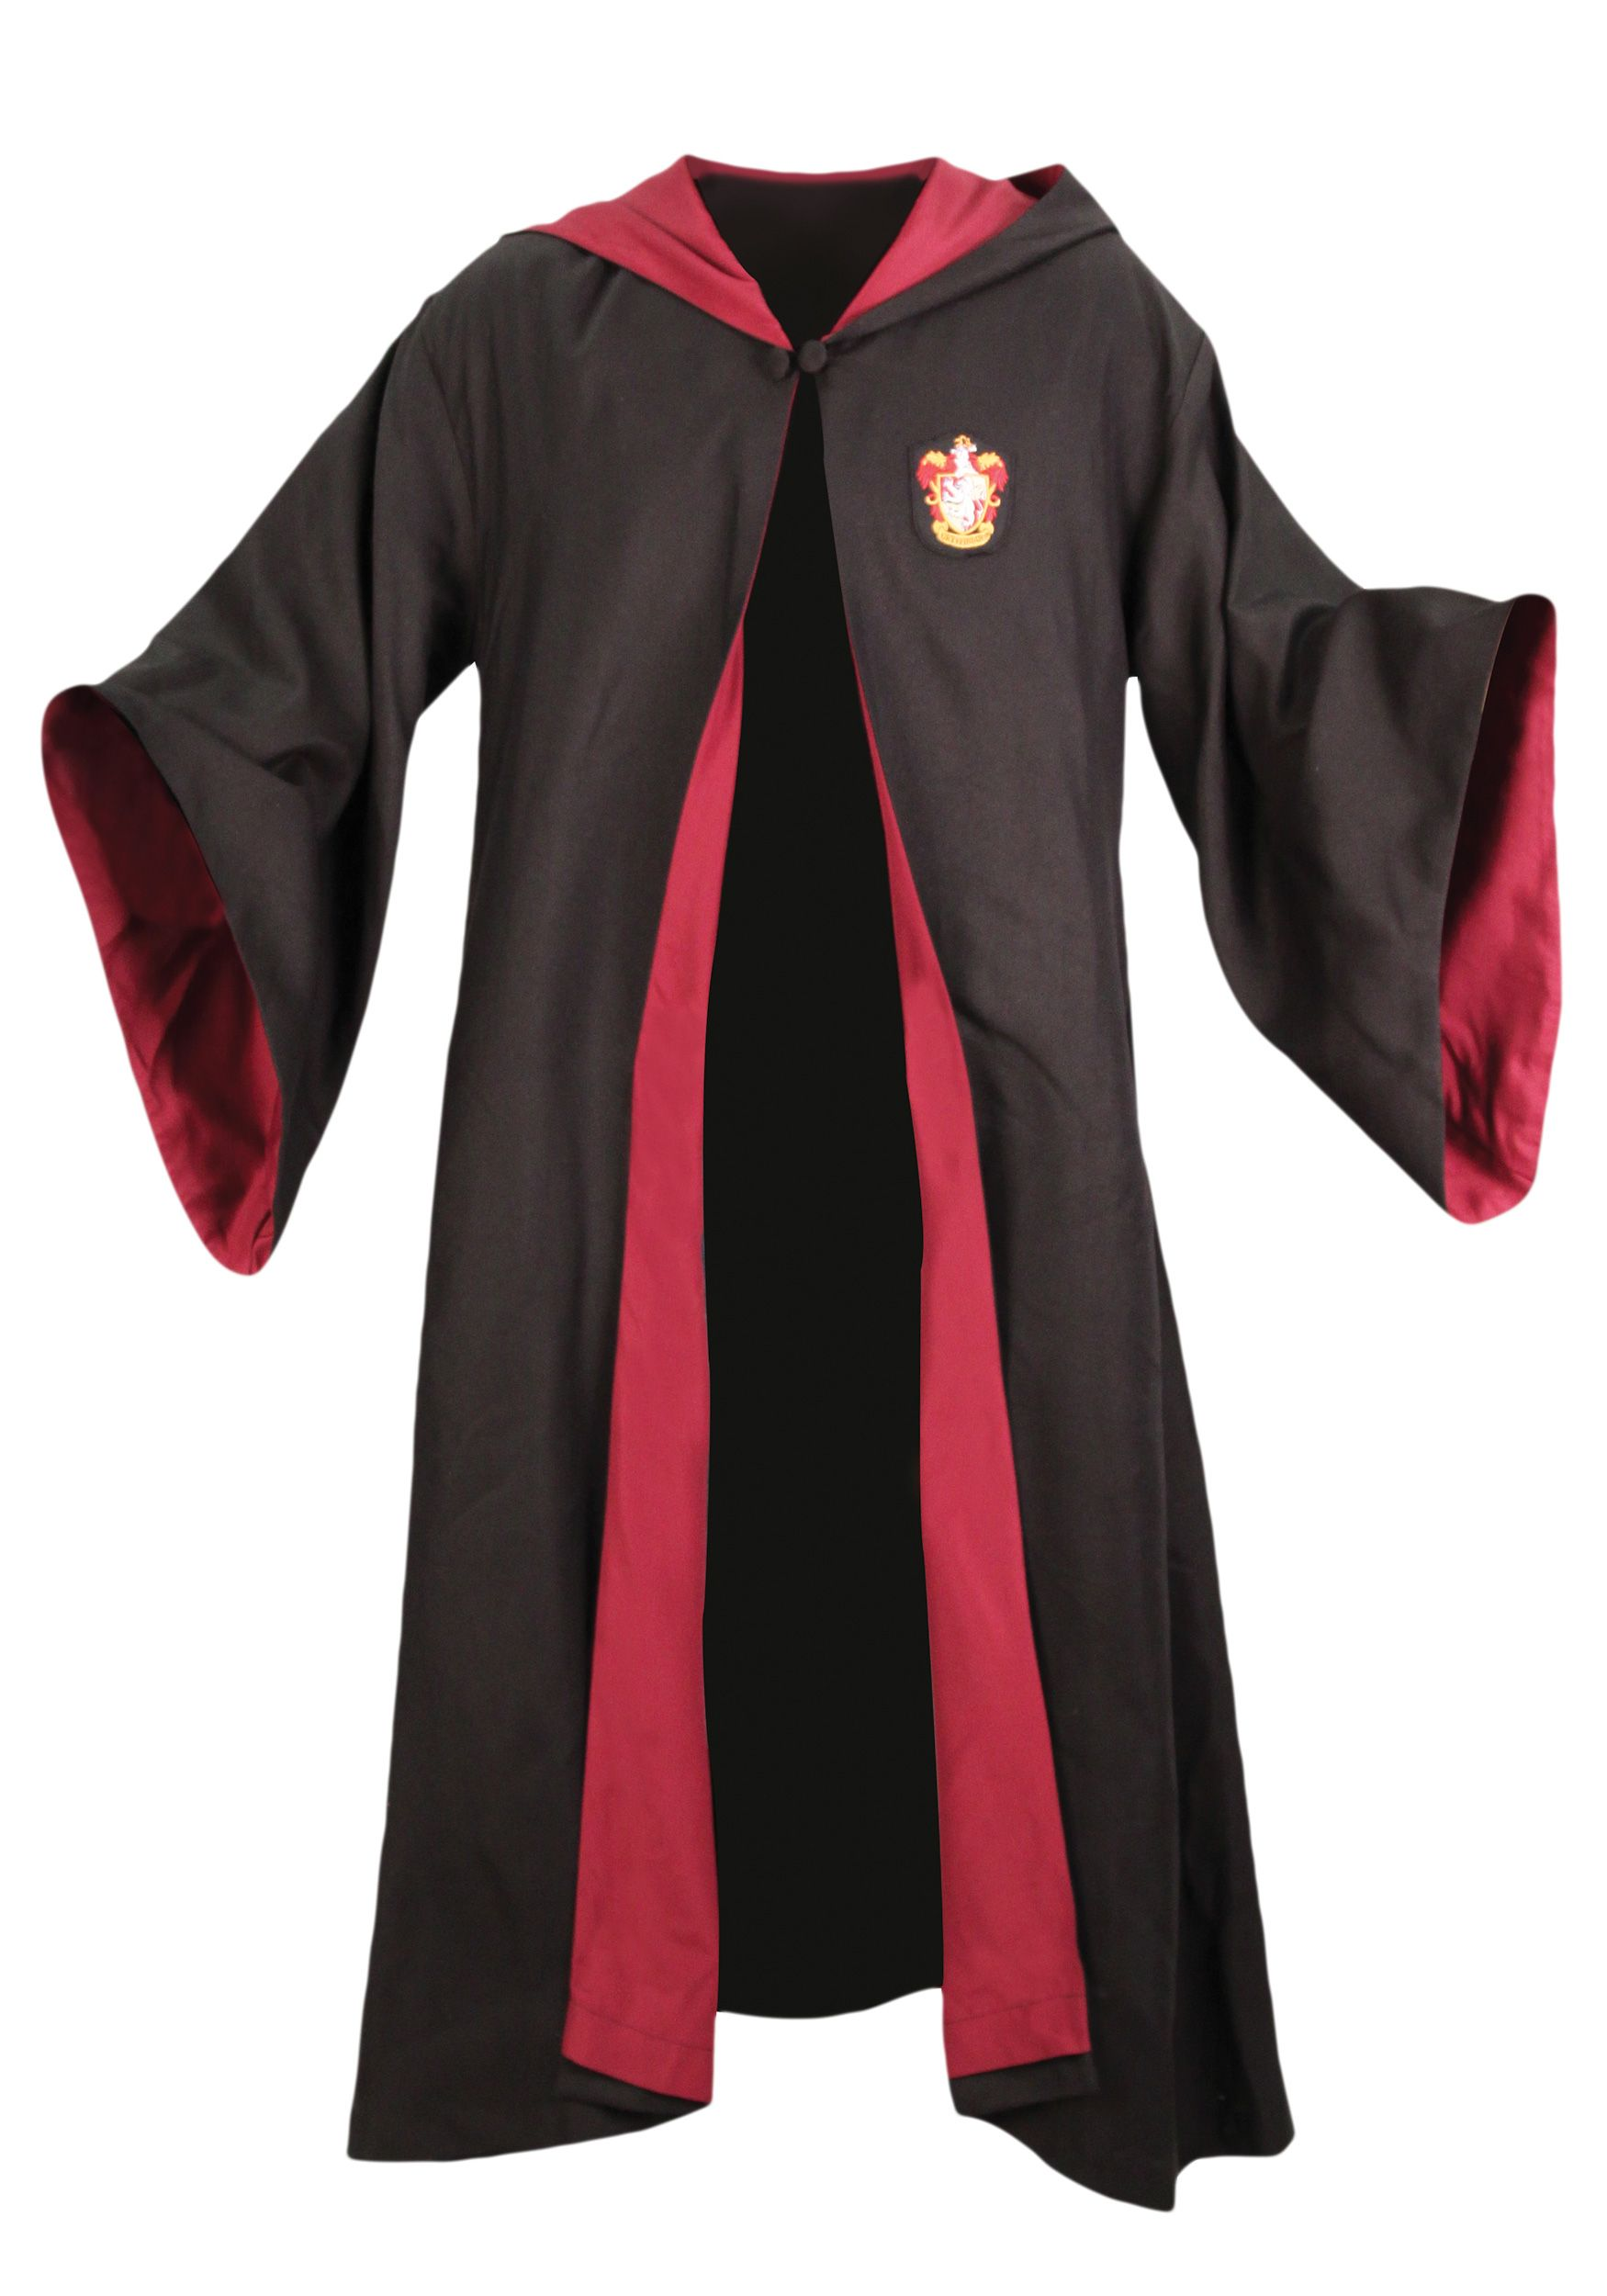 Oh man, I\'d love to have this robe for my Gryffindor student cosplay ...